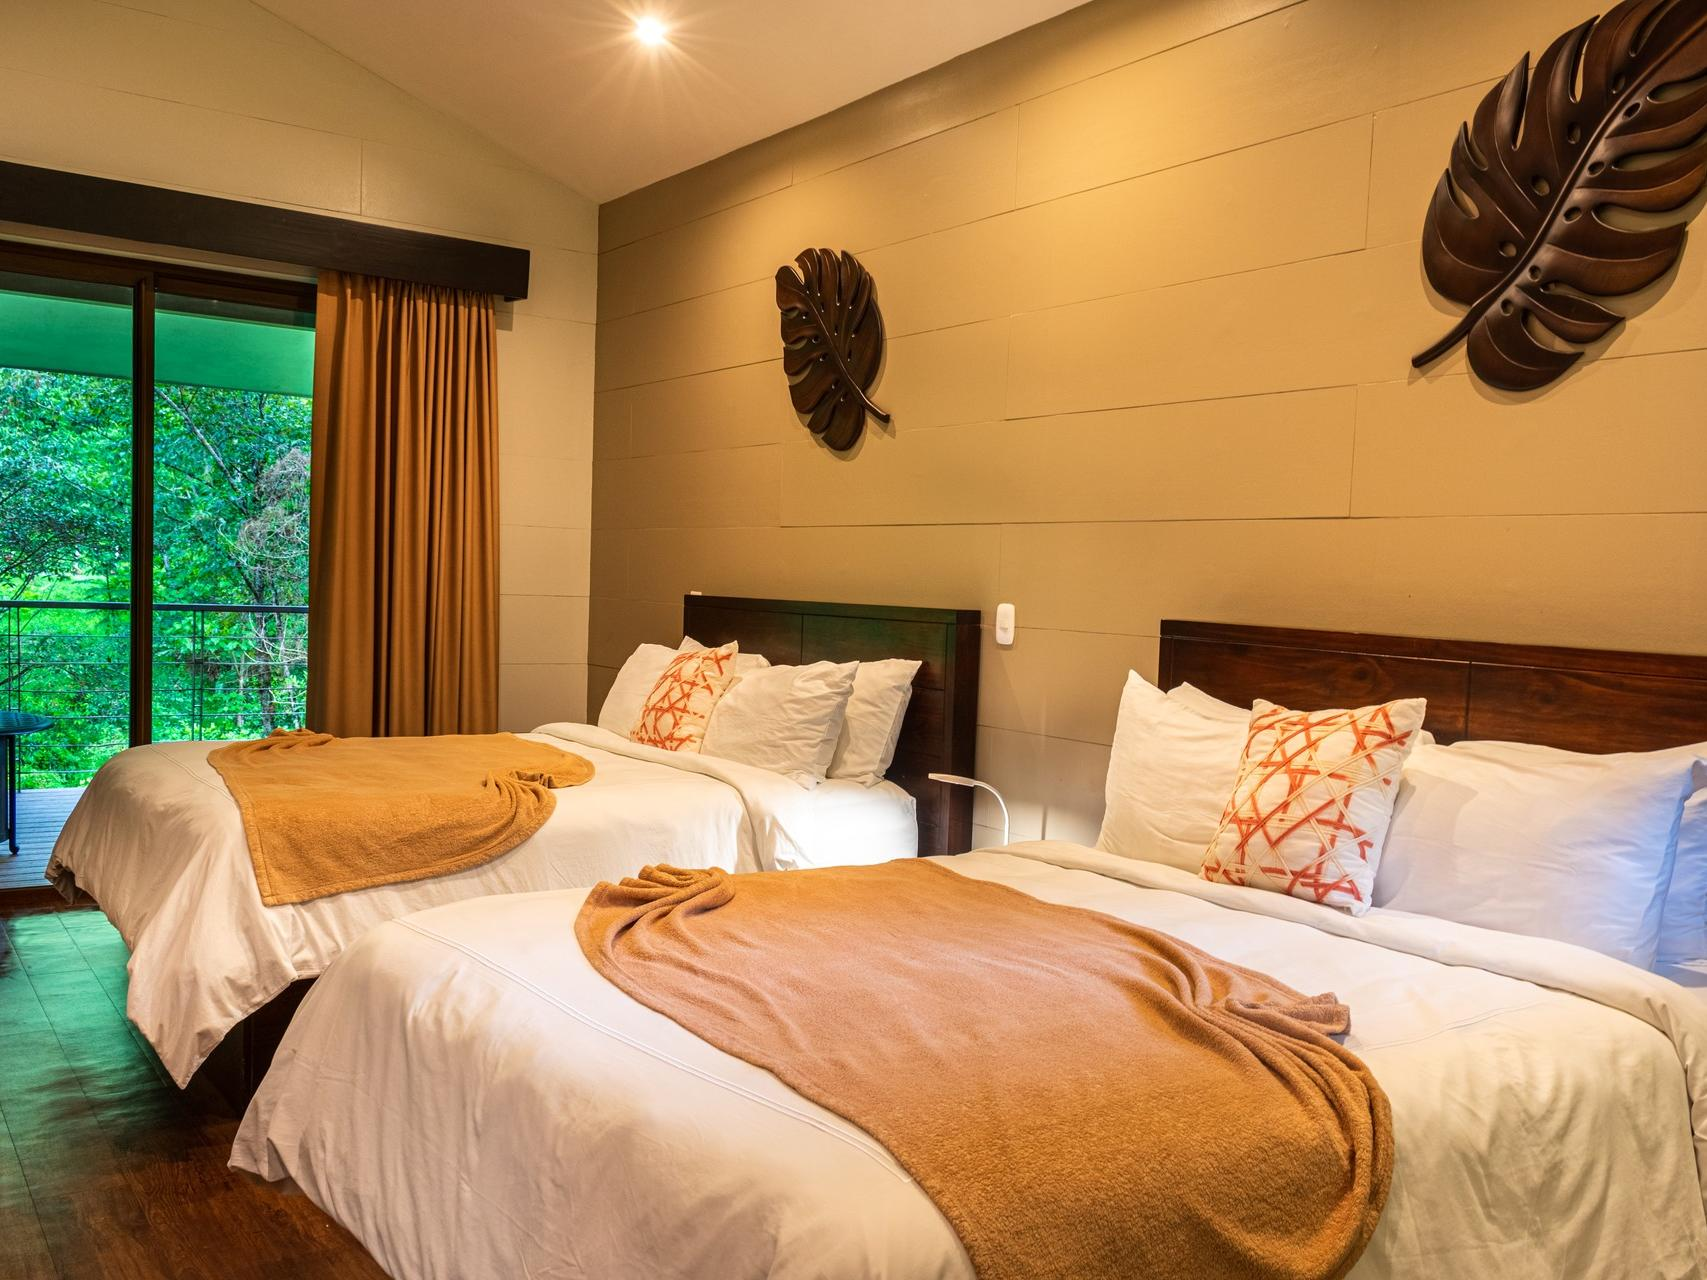 room with two beds and wooden wall art